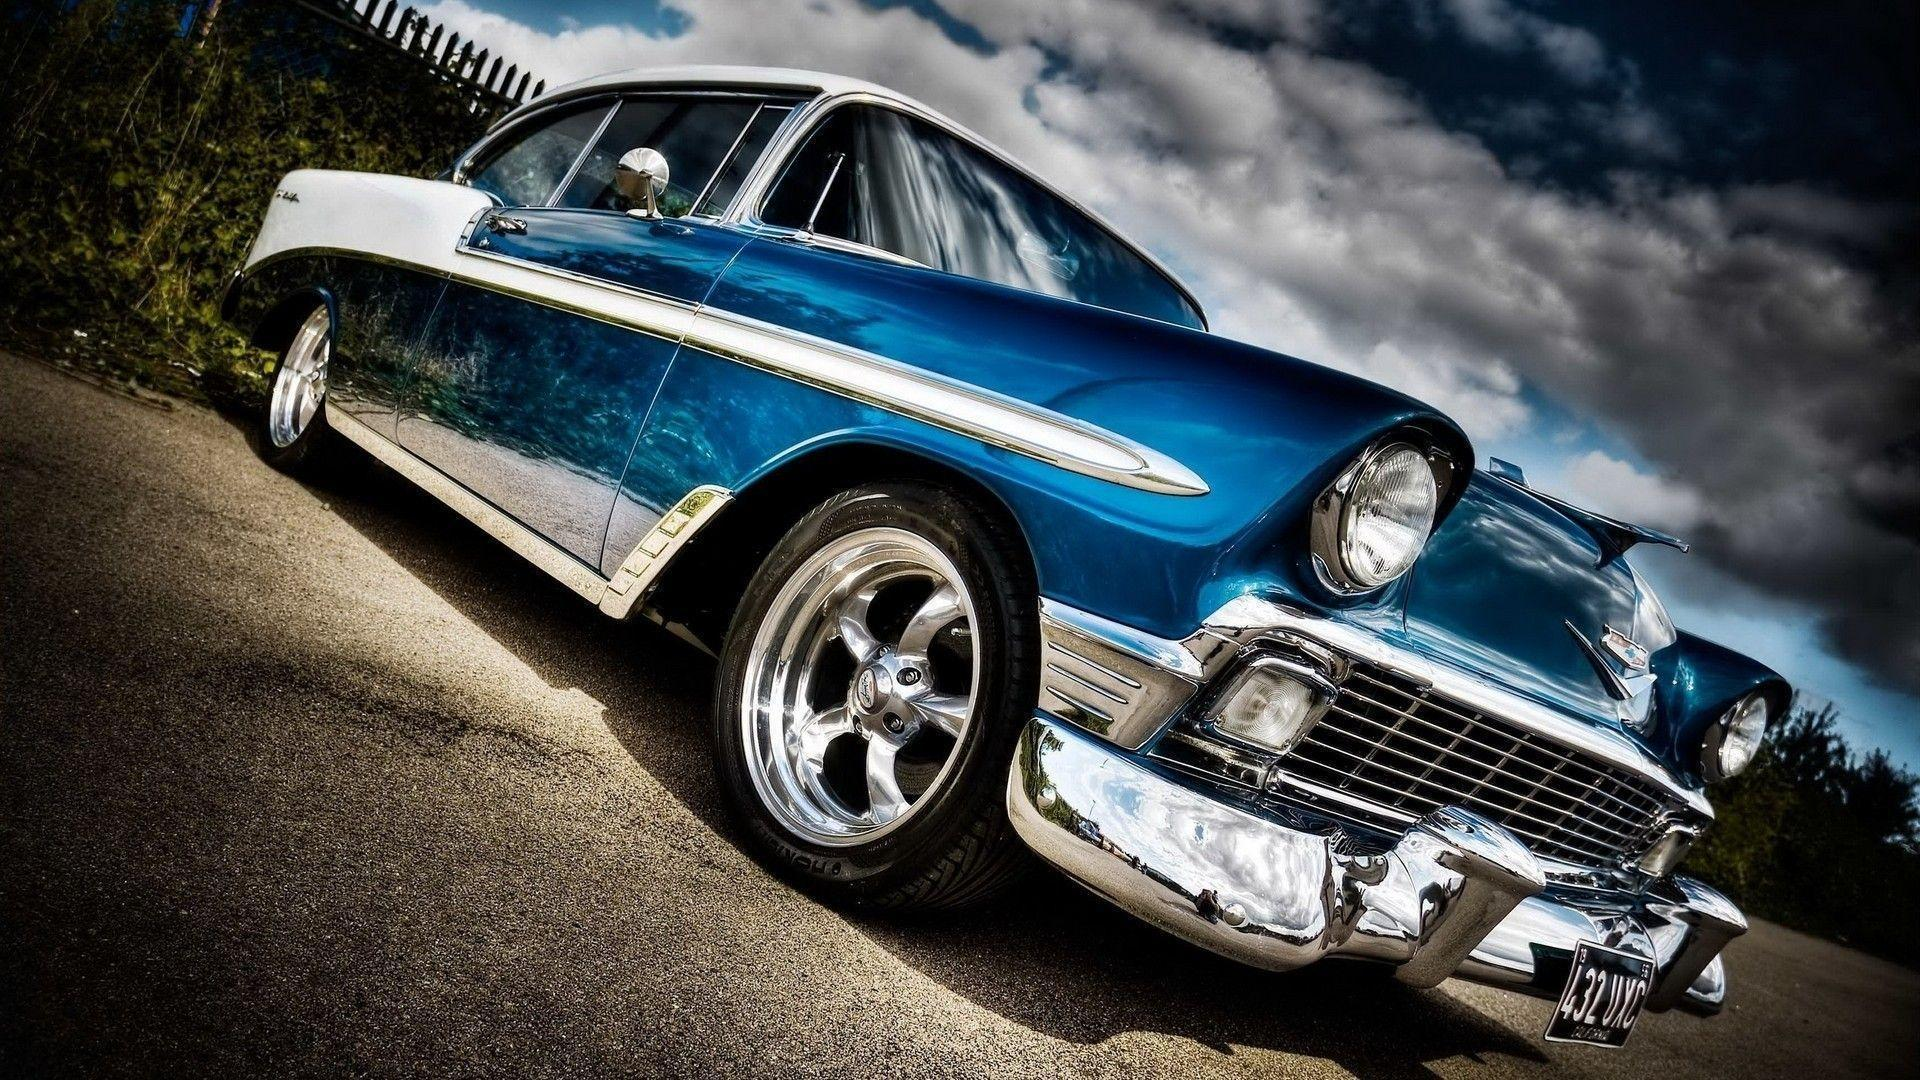 1066 Chevy Wallpapers | Chevy Backgrounds